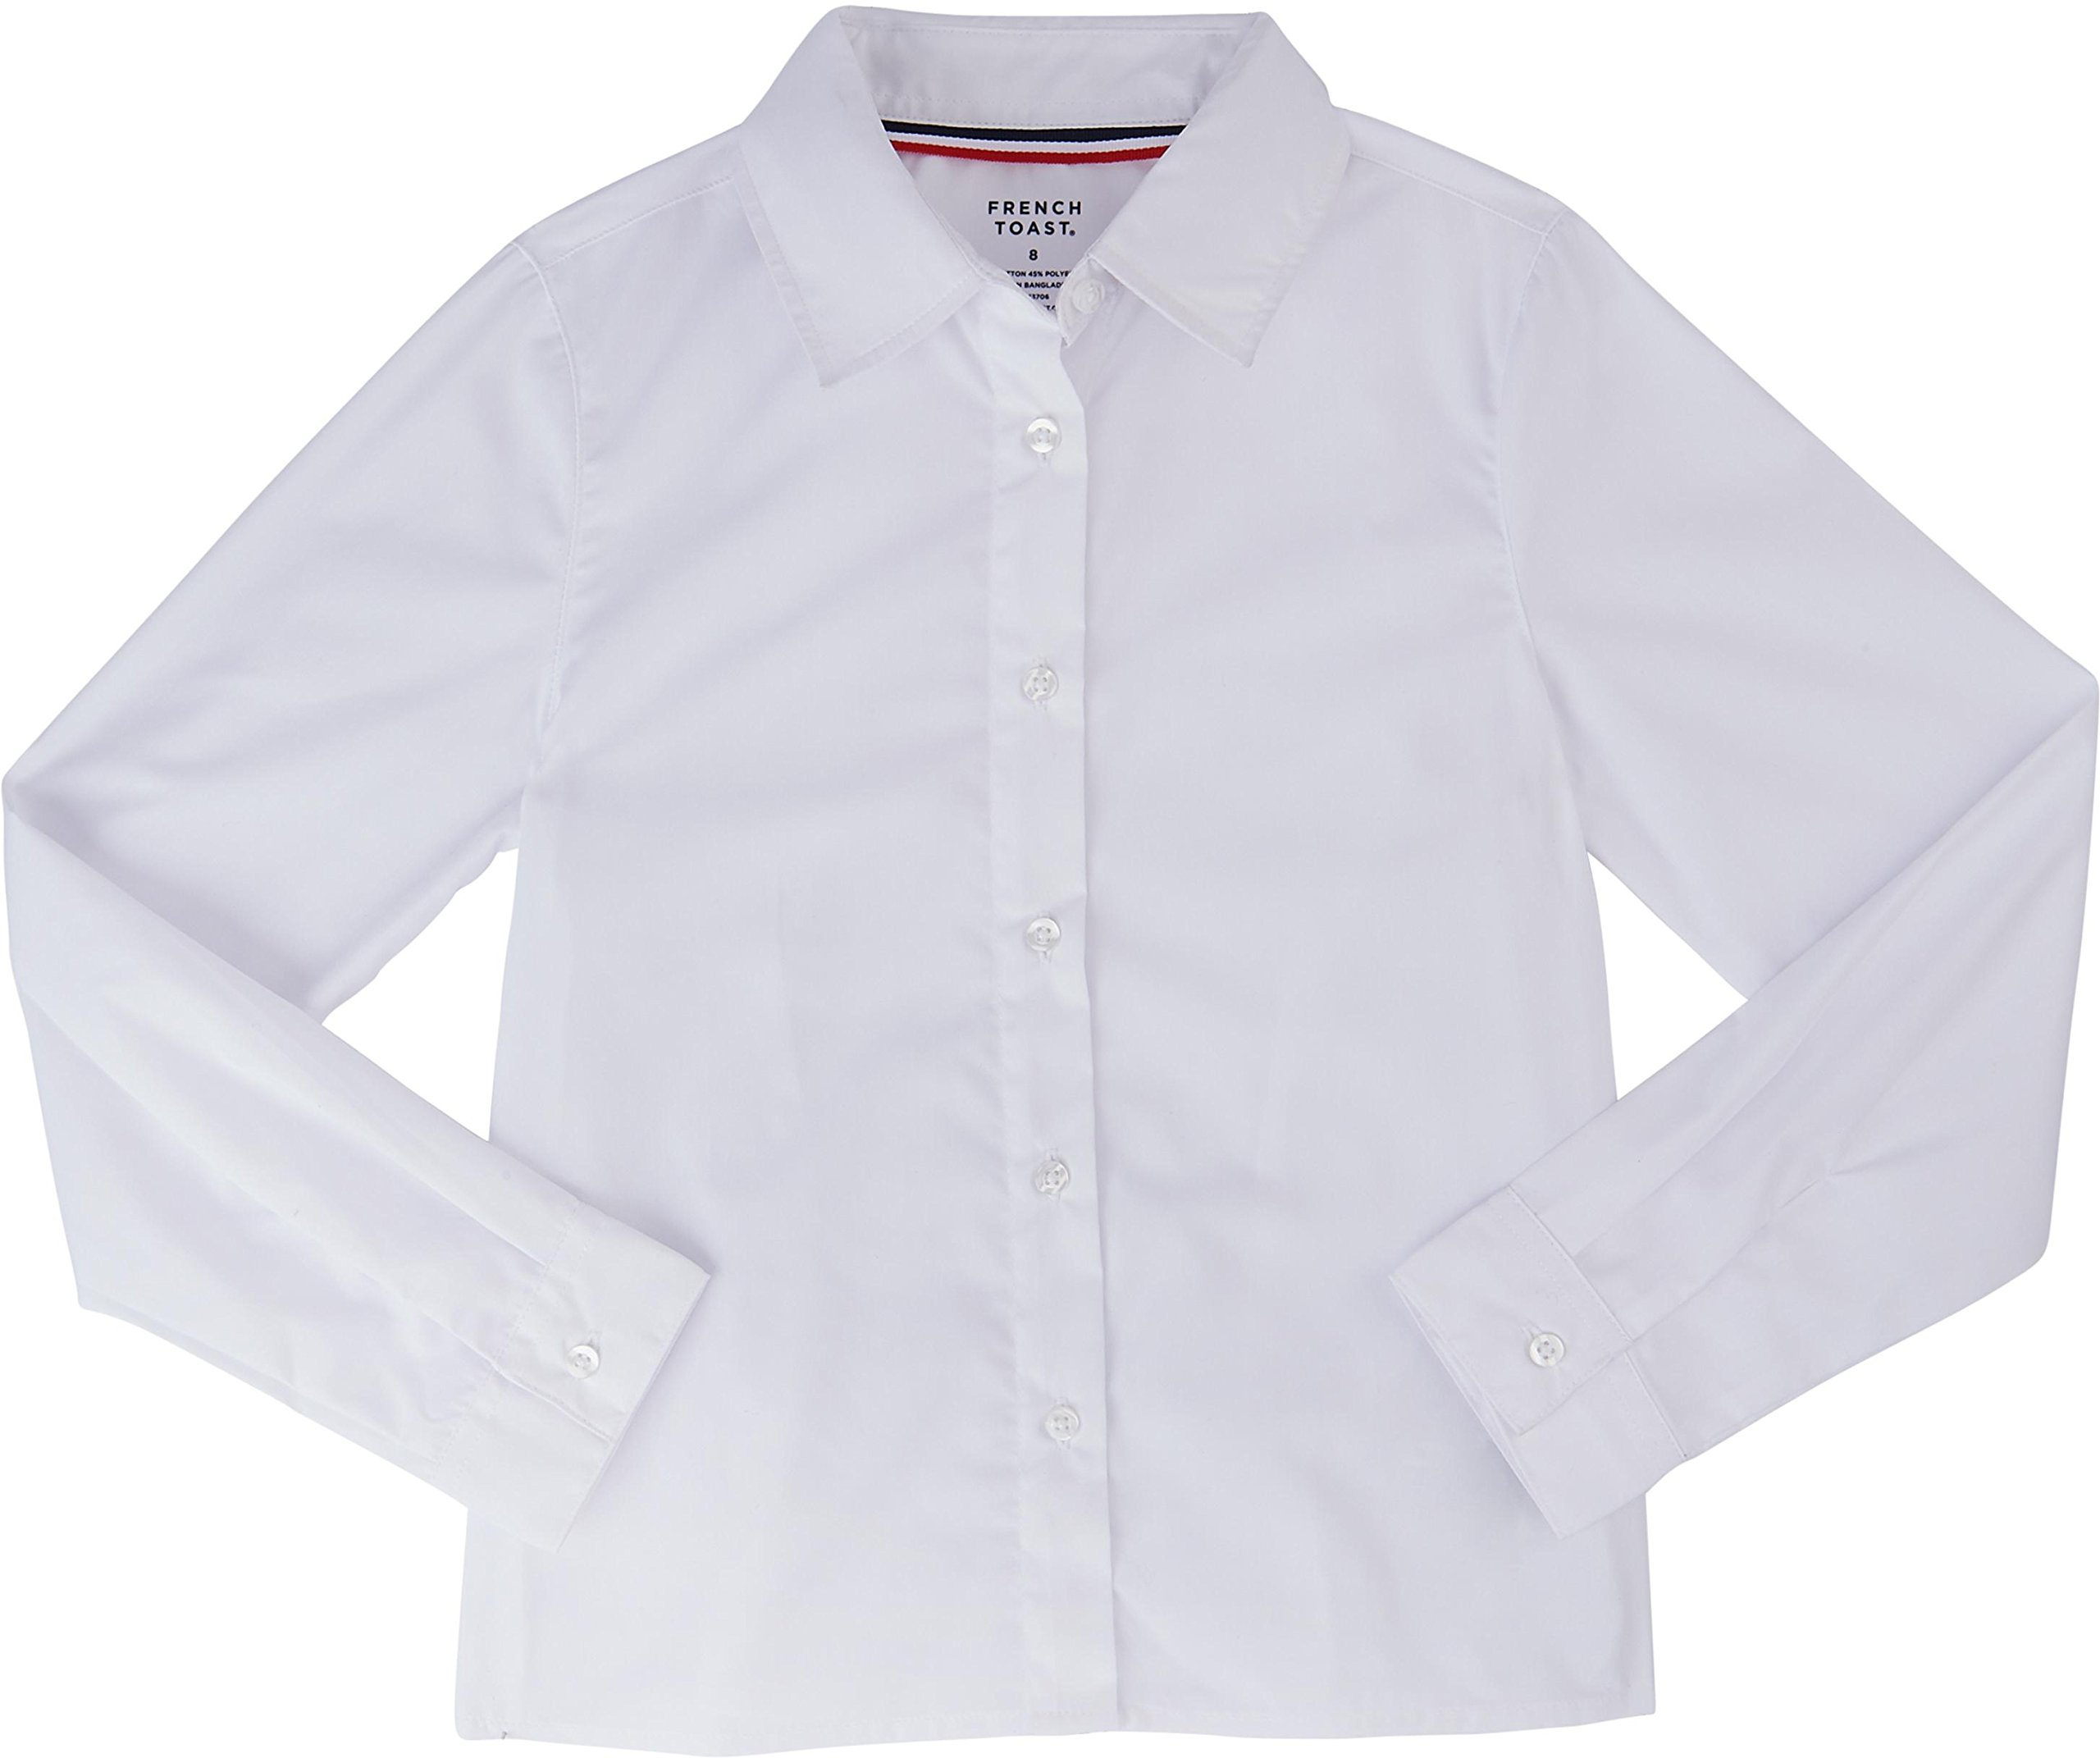 French Toast School Uniform Girls Long Sleeve Pointed Collar Blouse, White, 18